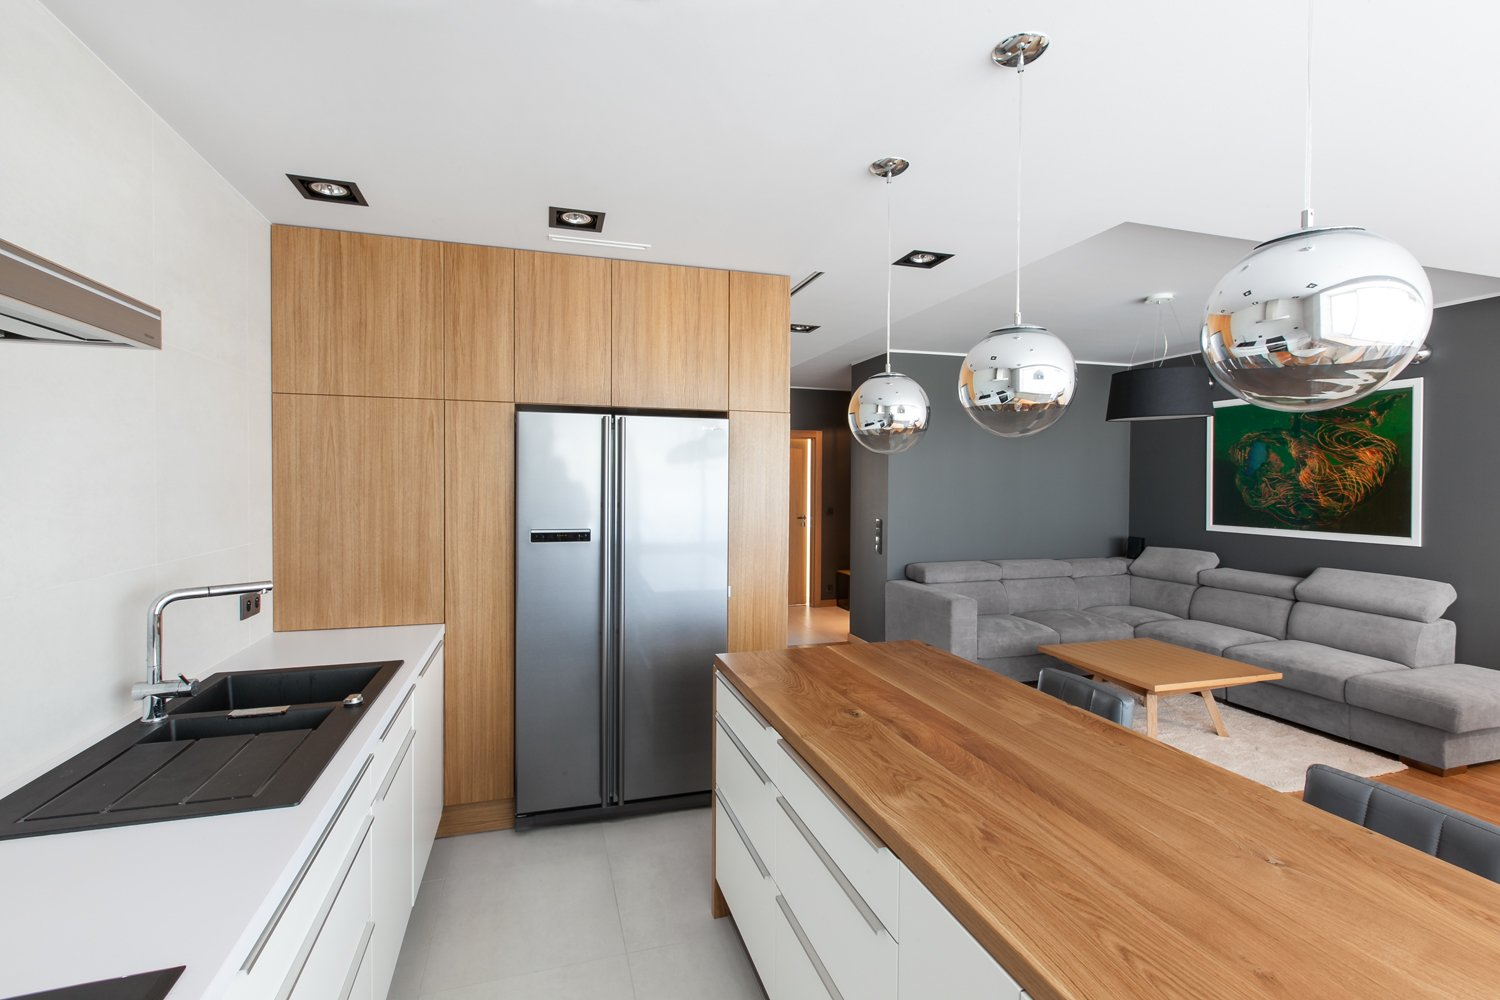 The neutral color palette extends to the kitchen, which is overhung by several pendant globes. Tagged: Kitchen, Wood Counter, and White Cabinet.  Photo 6 of 10 in 10 Open Kitchen Solutions That Will Get Things Cooking from An Open-Plan Apartment Renovation in Poland